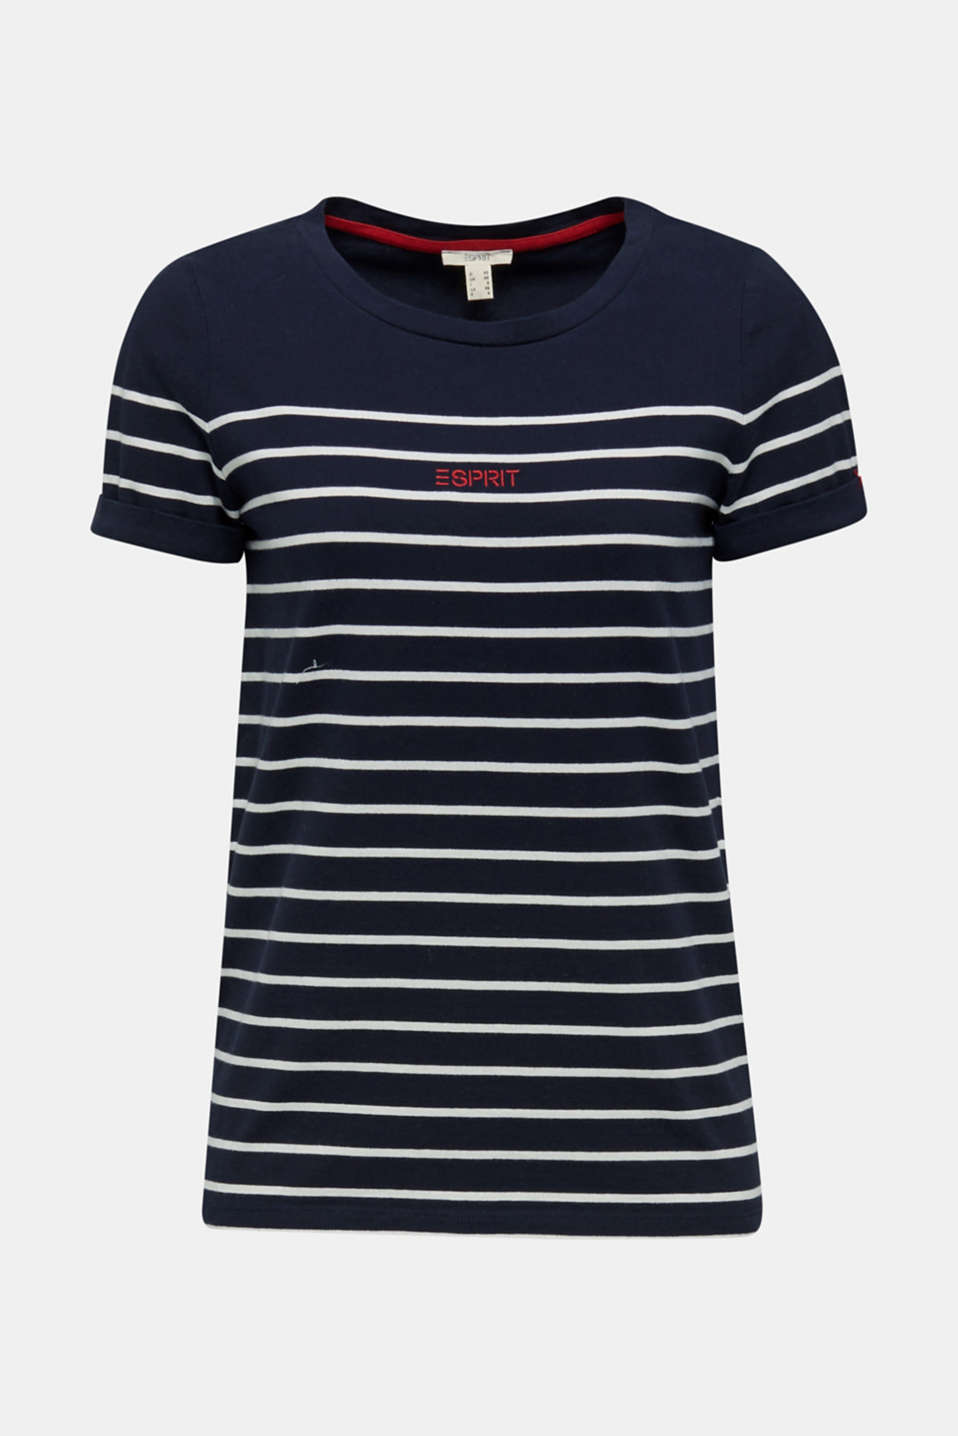 Striped top with embroidery, 100% cotton, NAVY, detail image number 5